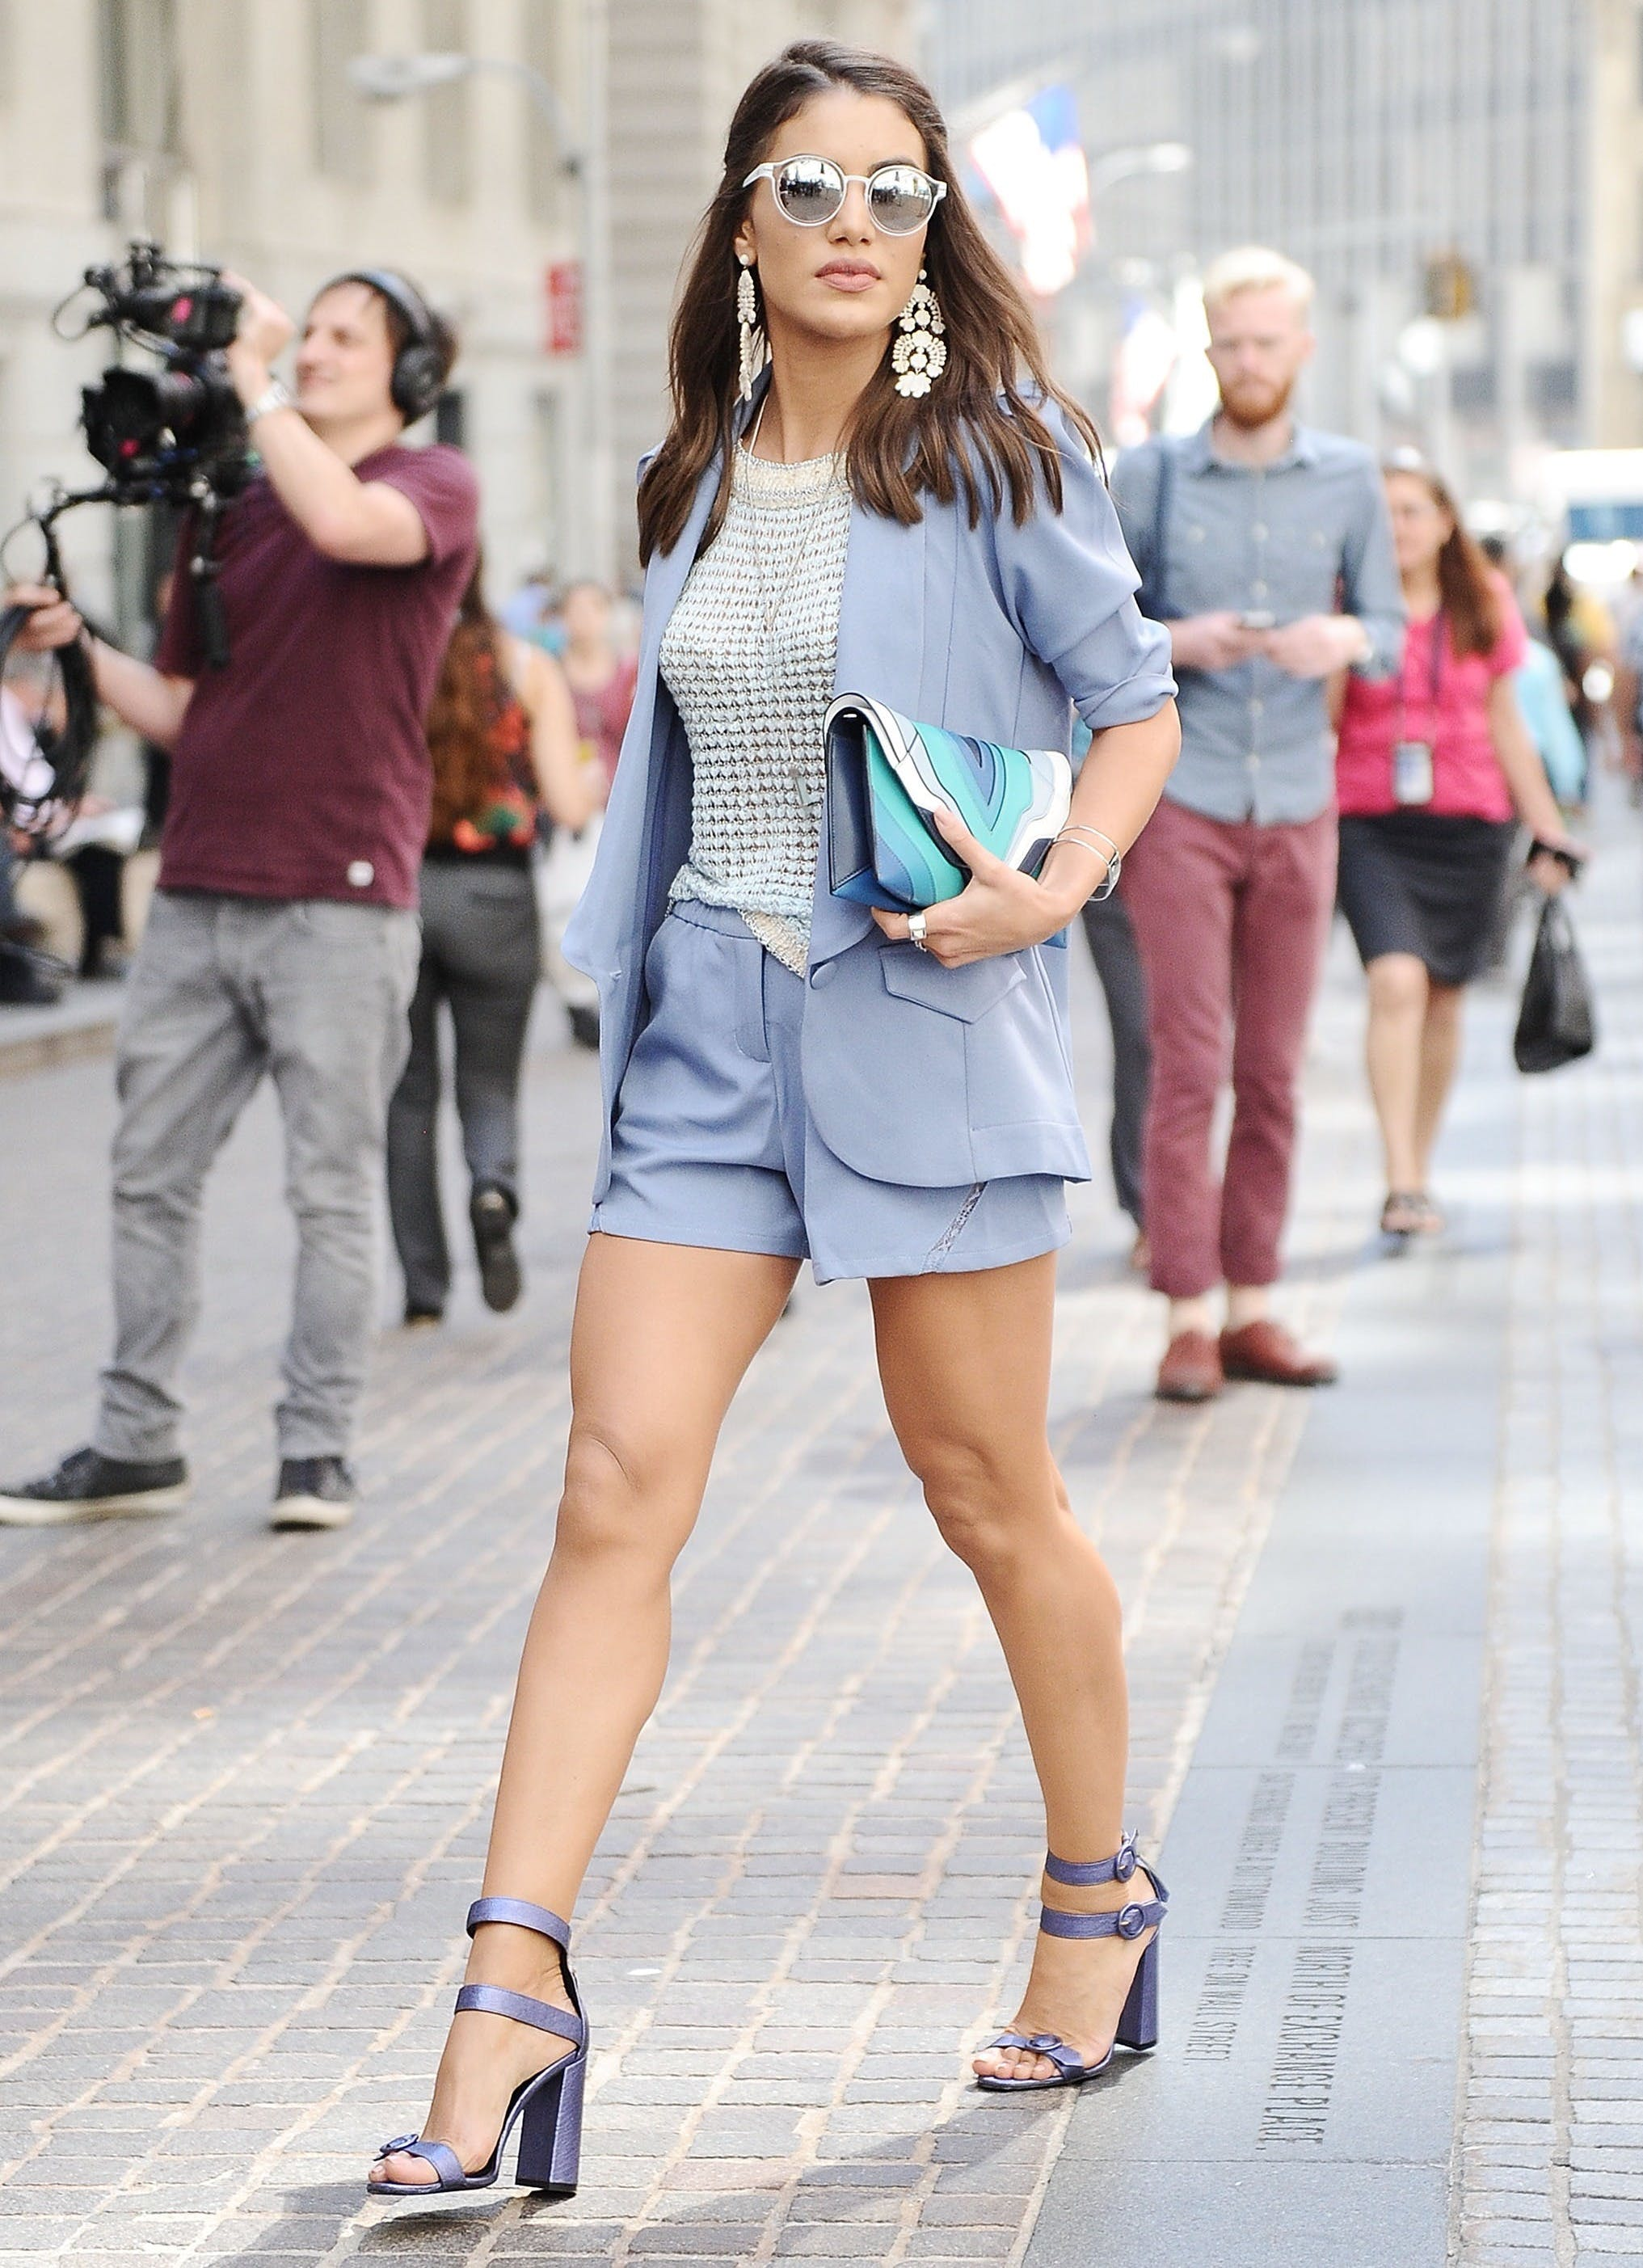 a woman wearing a shorts suit